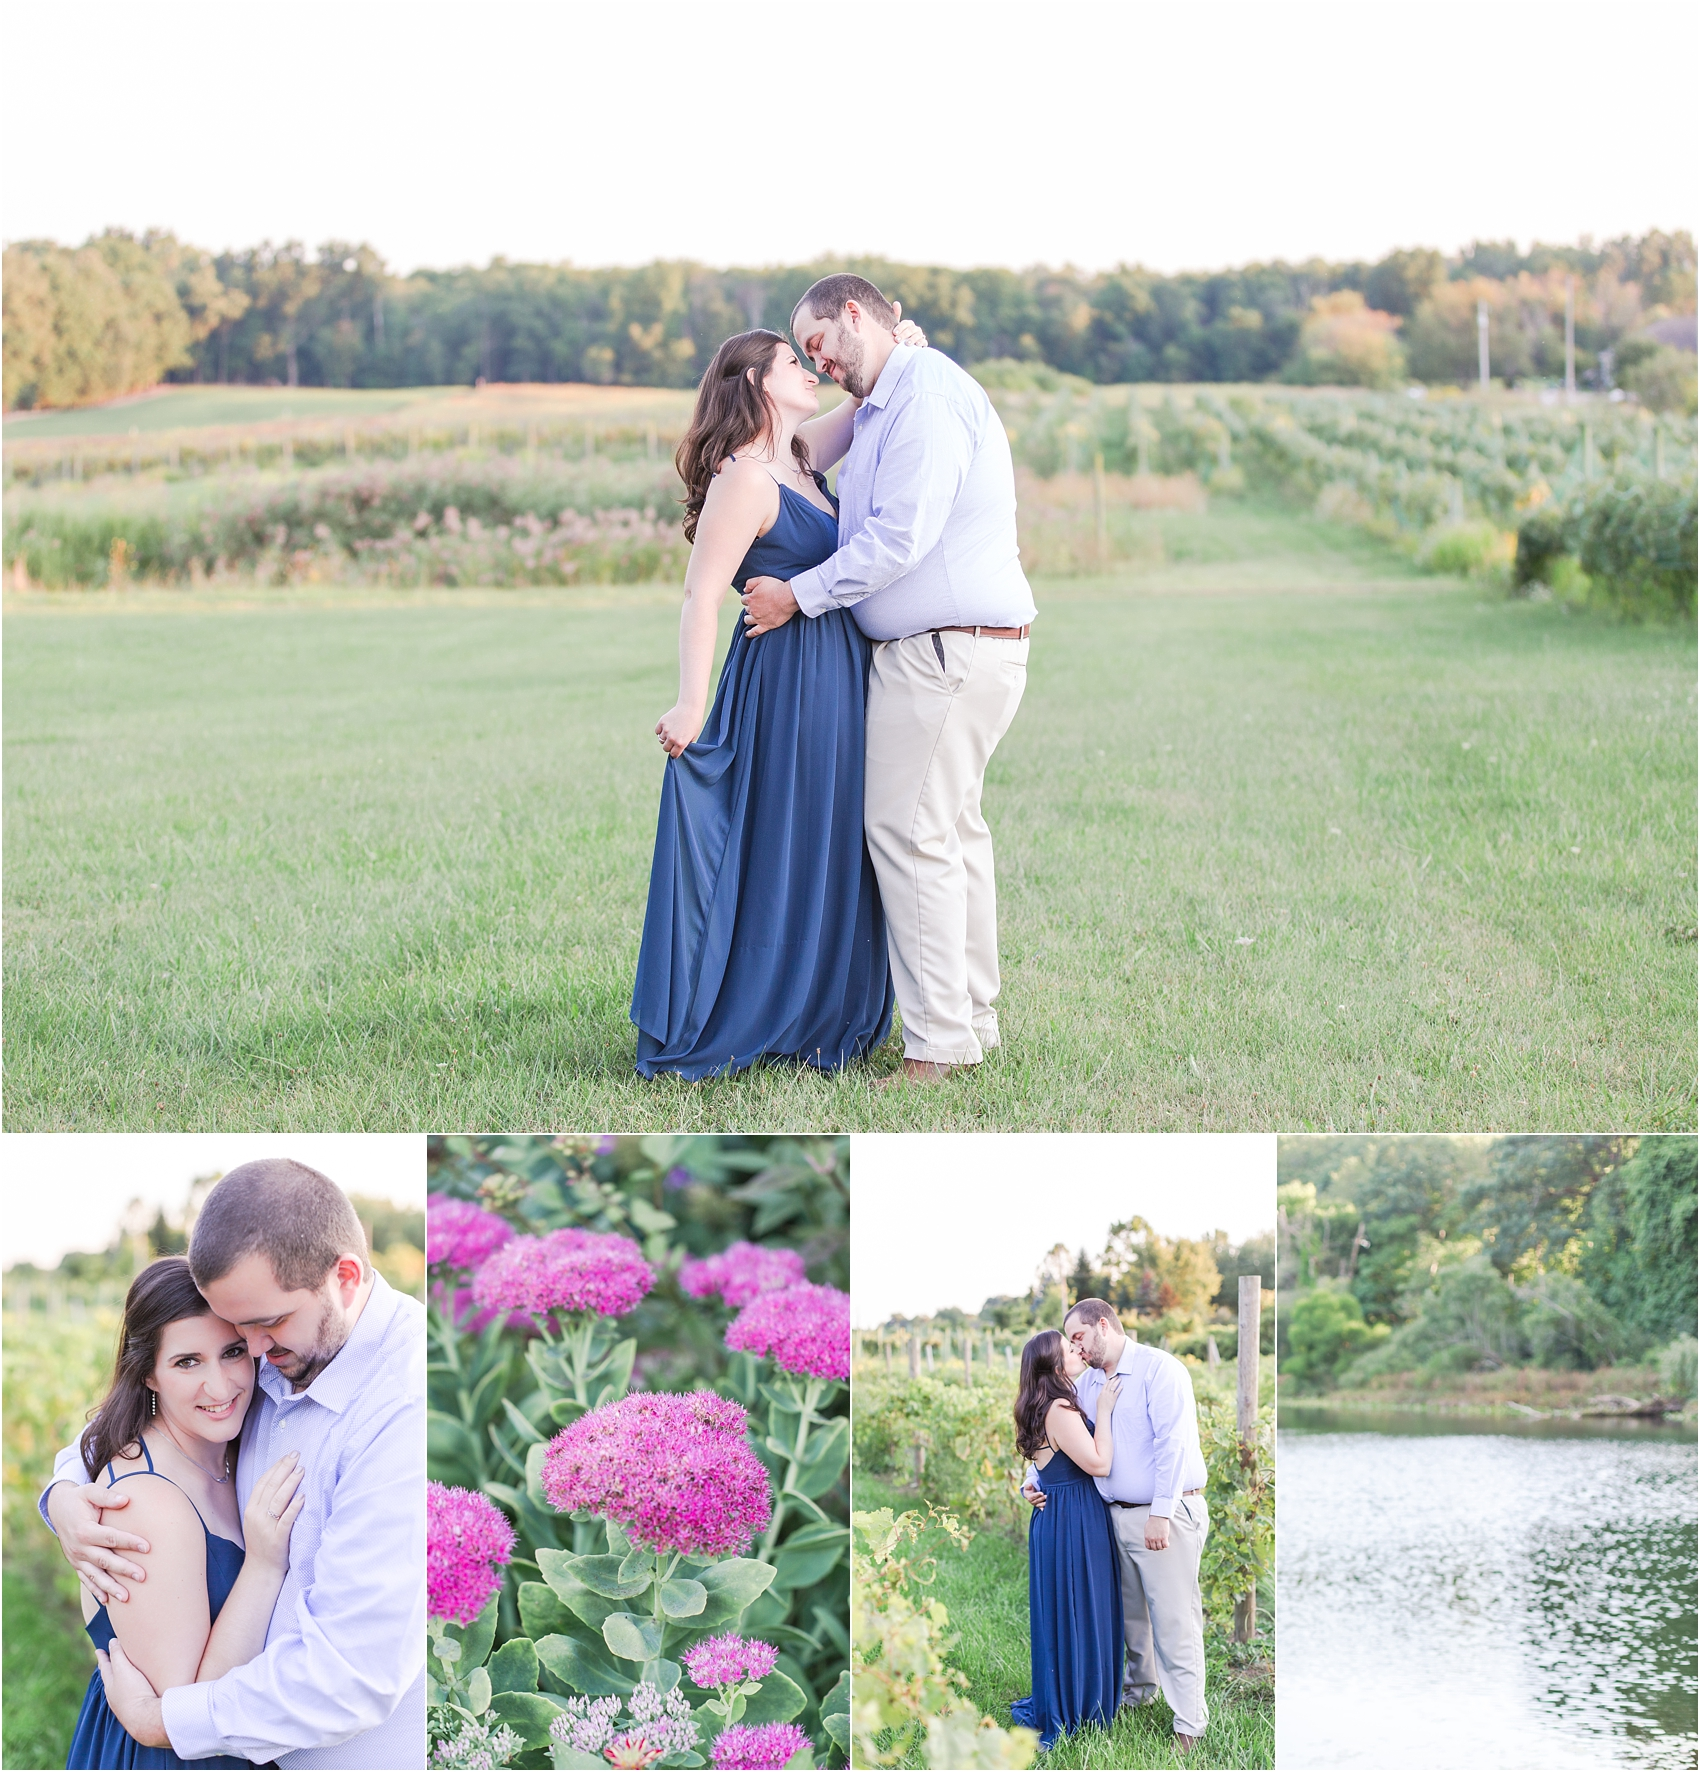 candid-romantic-summer-engagement-photos-at-hidden-lake-gardens-and-black-fire-winery-in-tipton-mi-by-courtney-carolyn-photography_0042.jpg